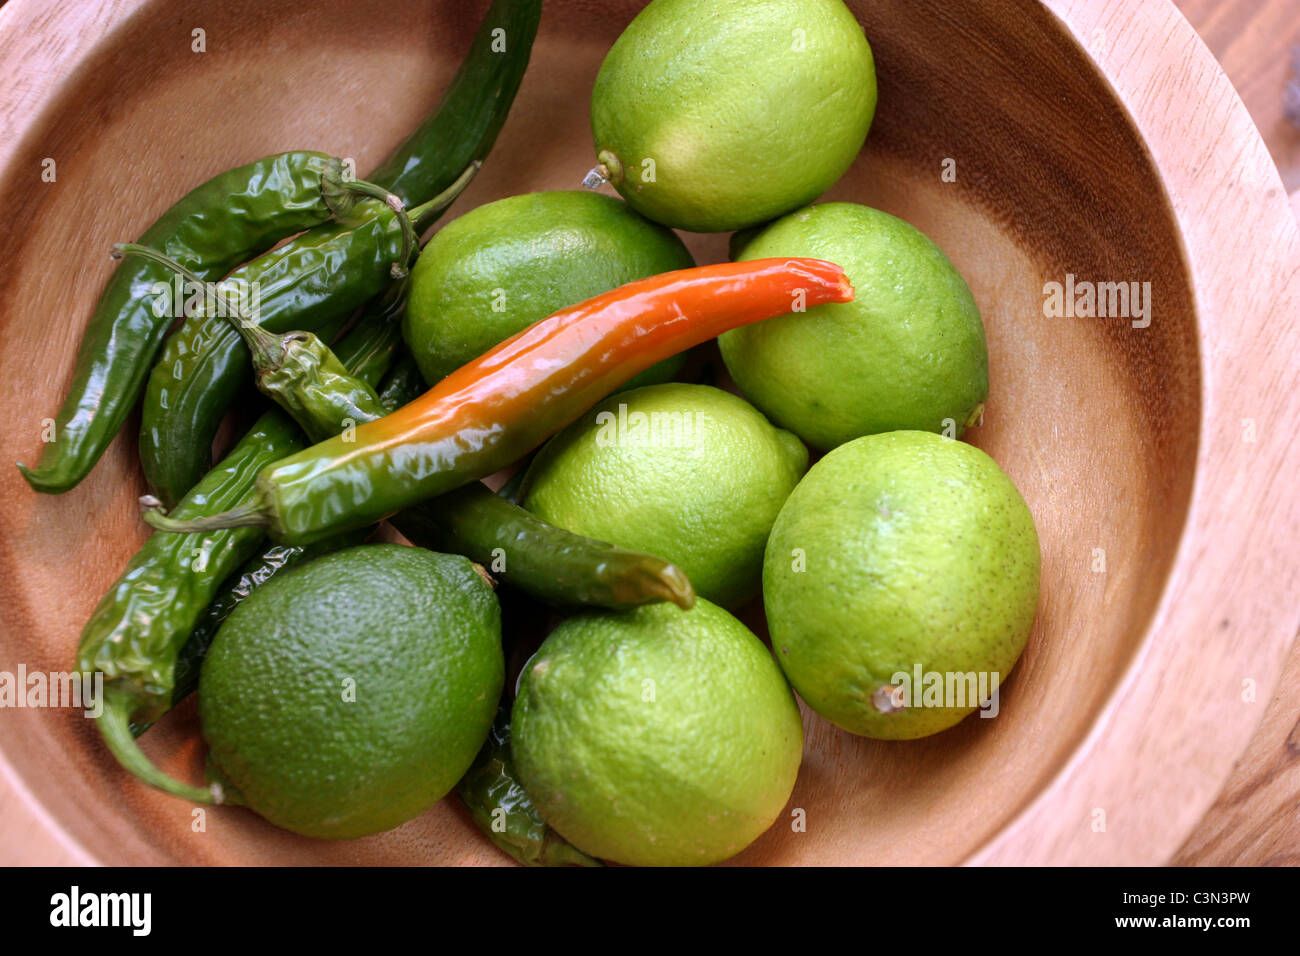 Limes and Green Chillies in a Bowl - Stock Image